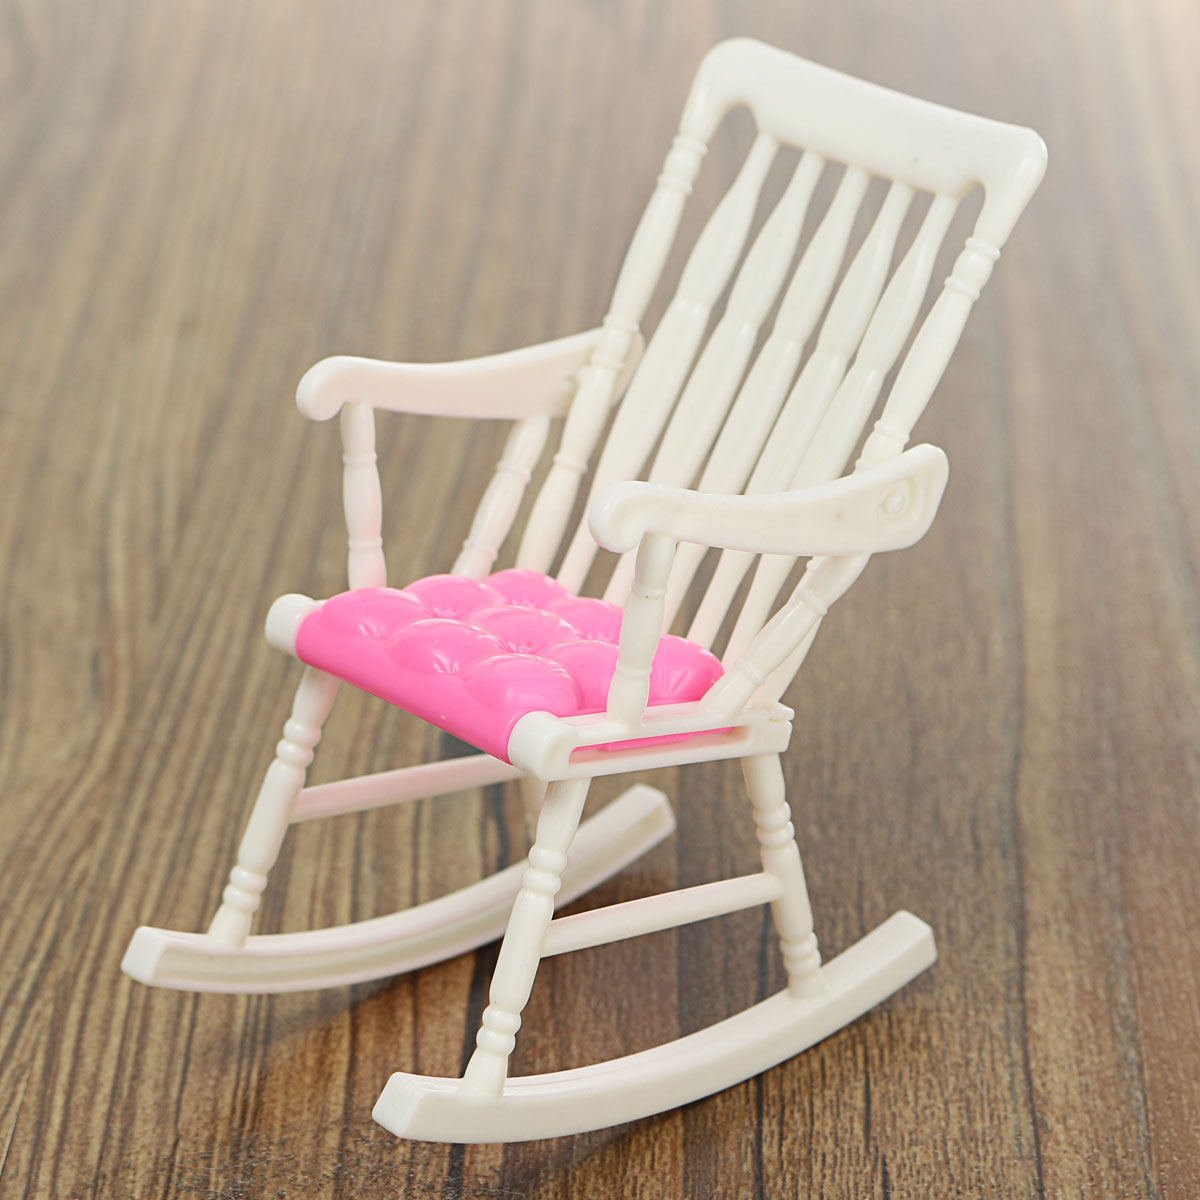 Mini Rocking Chair Wholesale Chairs And Tables 1 Pcs Doll Accessories For House